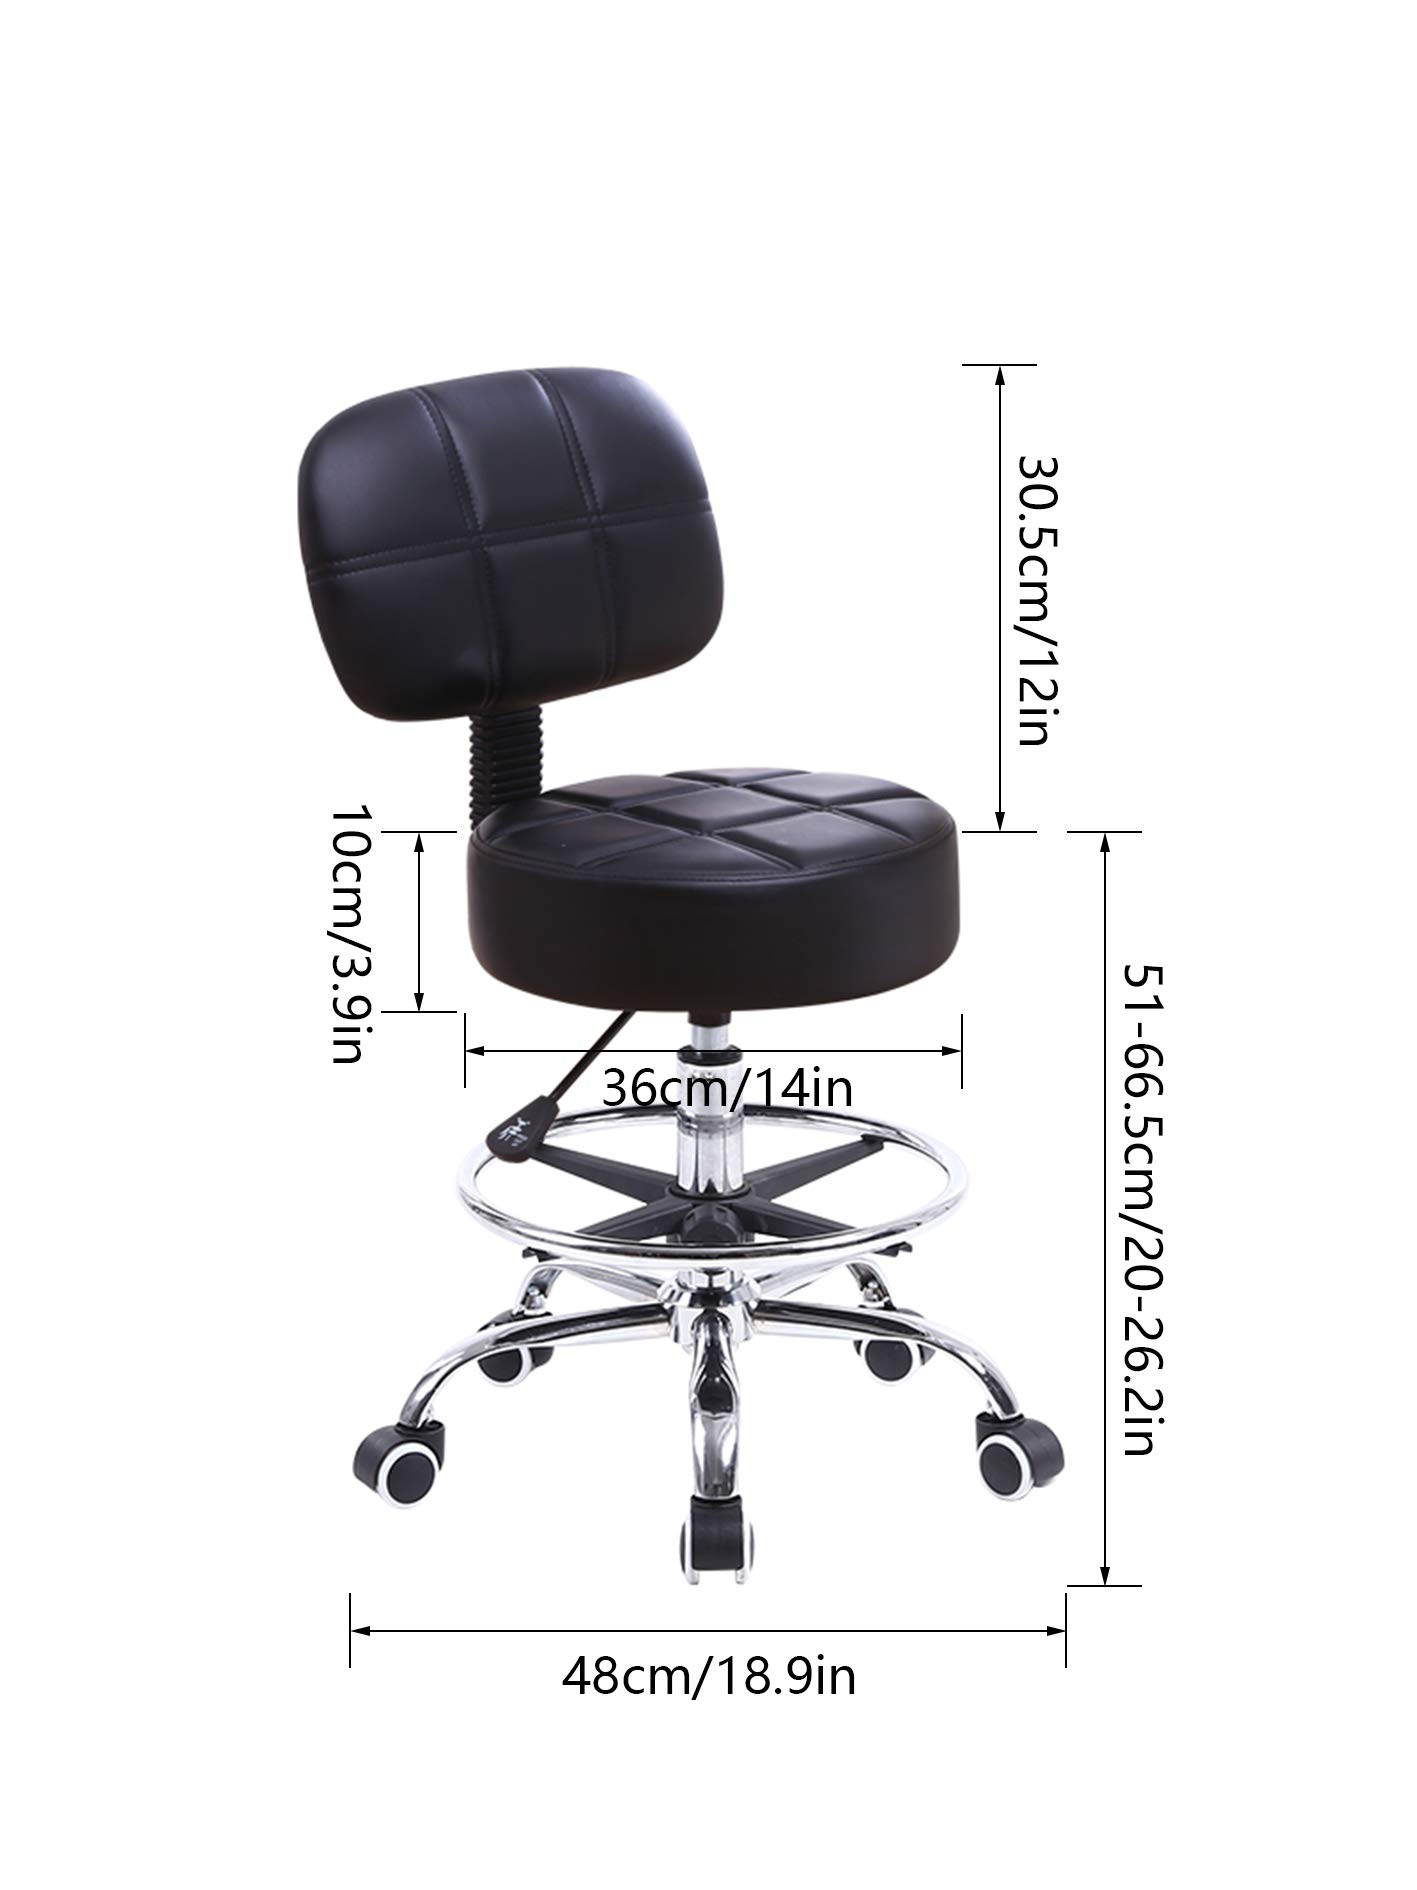 KKTONER Swivel Round Rolling Stool PU Leather with Adjustable Foot Rest, Height Adjustable Task Work Drafting Chair with Back (BLACK)